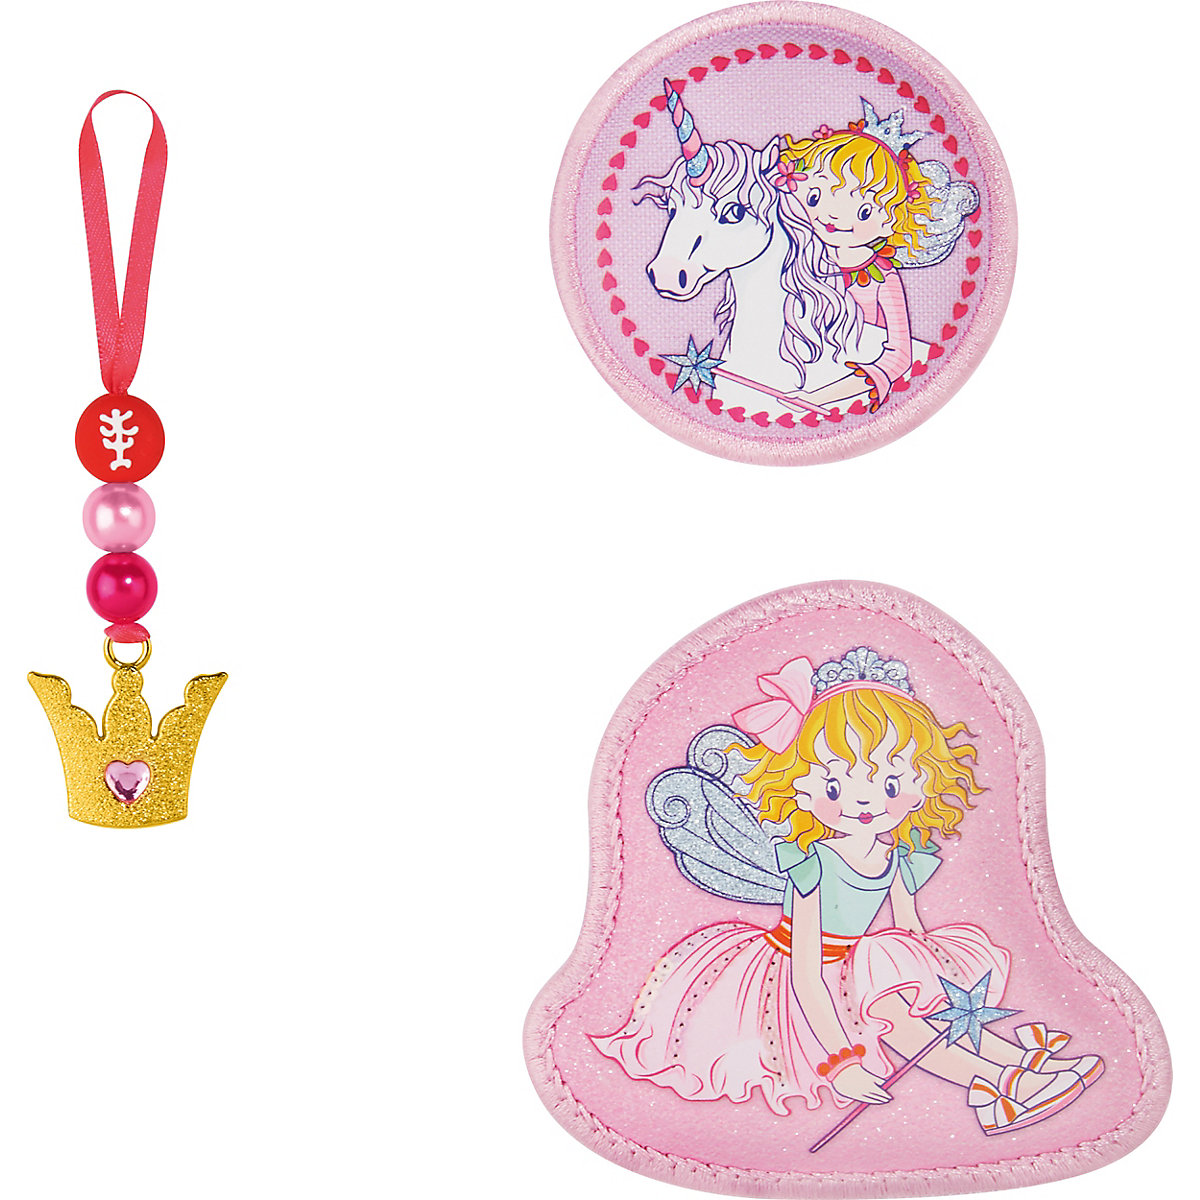 Step by Step 'Magic Mags' Wechselmotiv Prinzessin Lillifee Rosarien